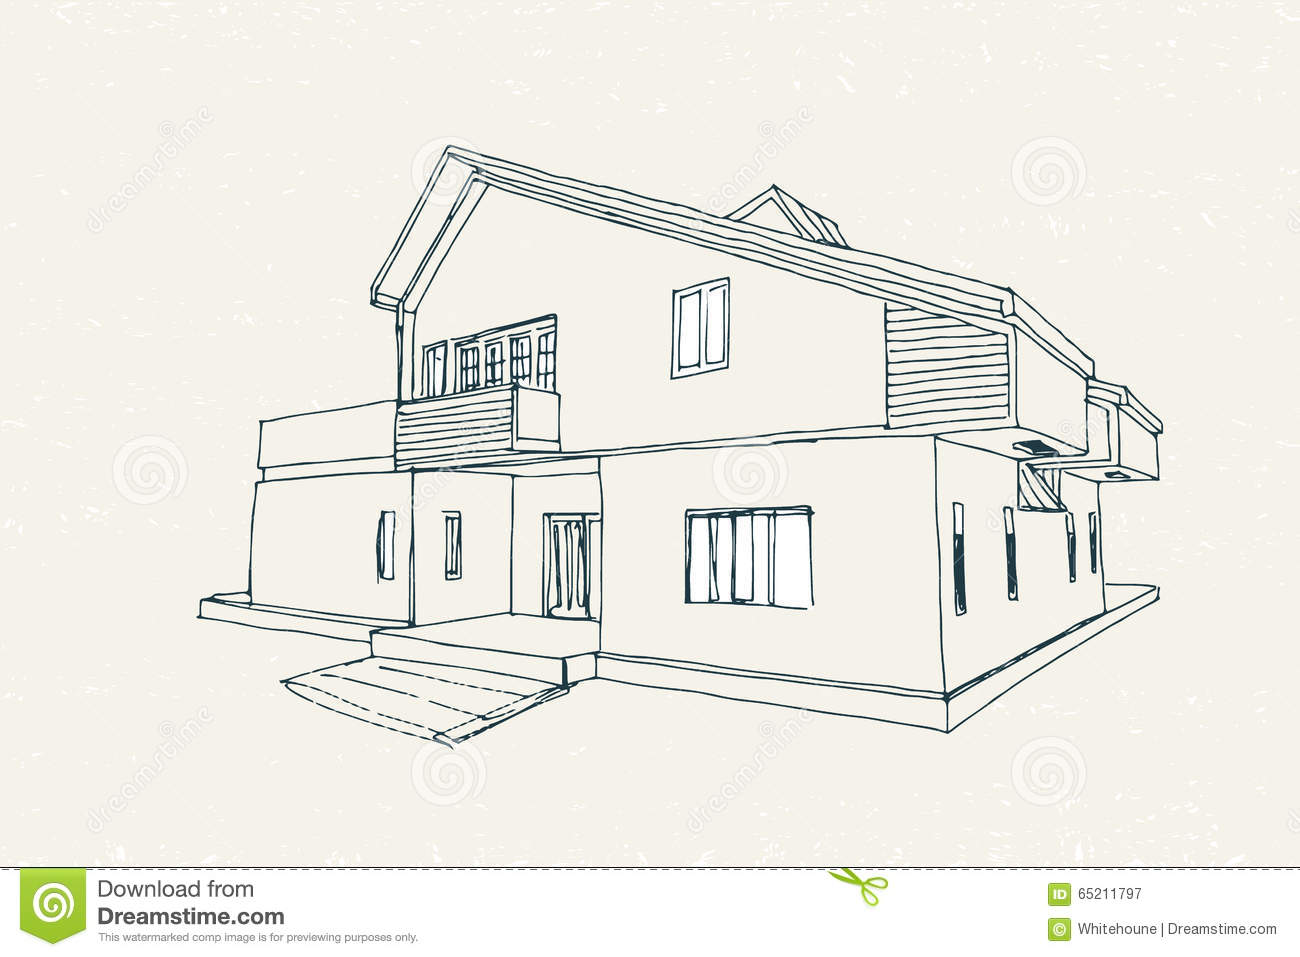 Vector architectural sketch of two storey house with balcony